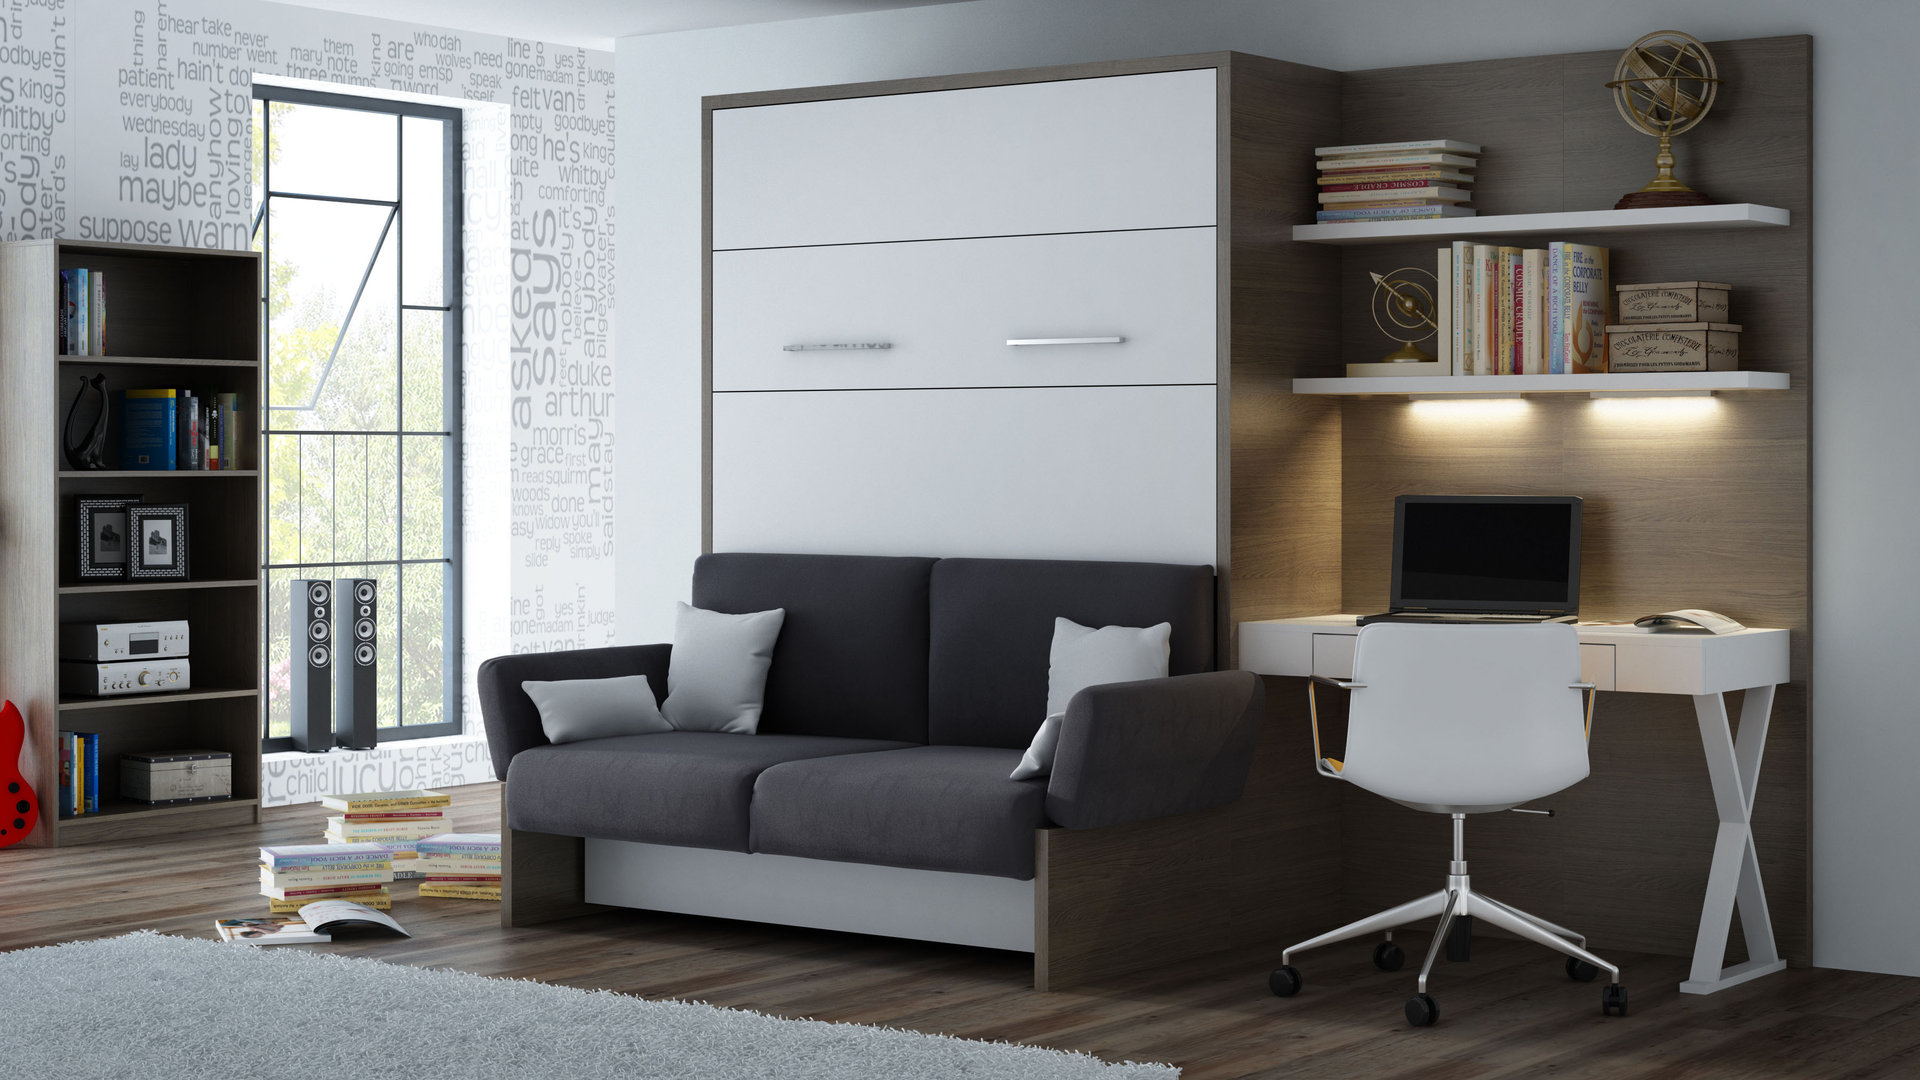 wandbett mit sofa wbs 1 soft office 140 x 200 cm eiche anthrazit. Black Bedroom Furniture Sets. Home Design Ideas